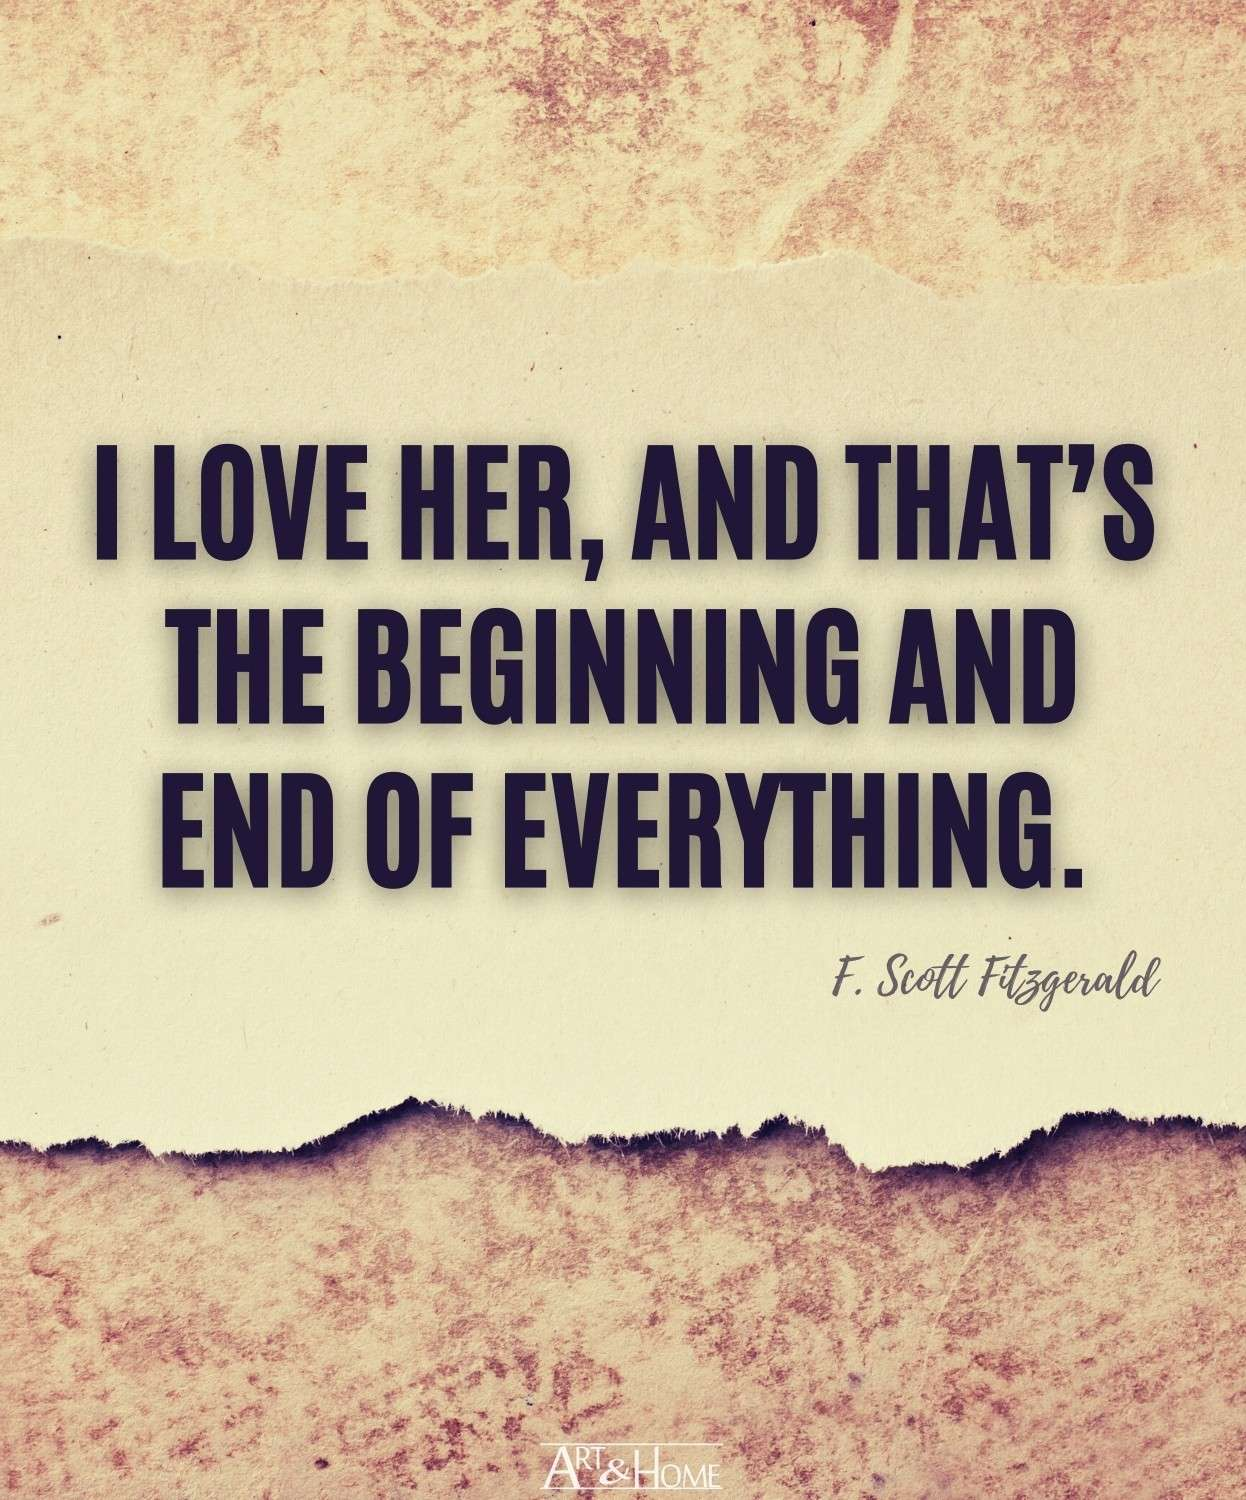 F. Scott Fitzgerald Love Quote for Her